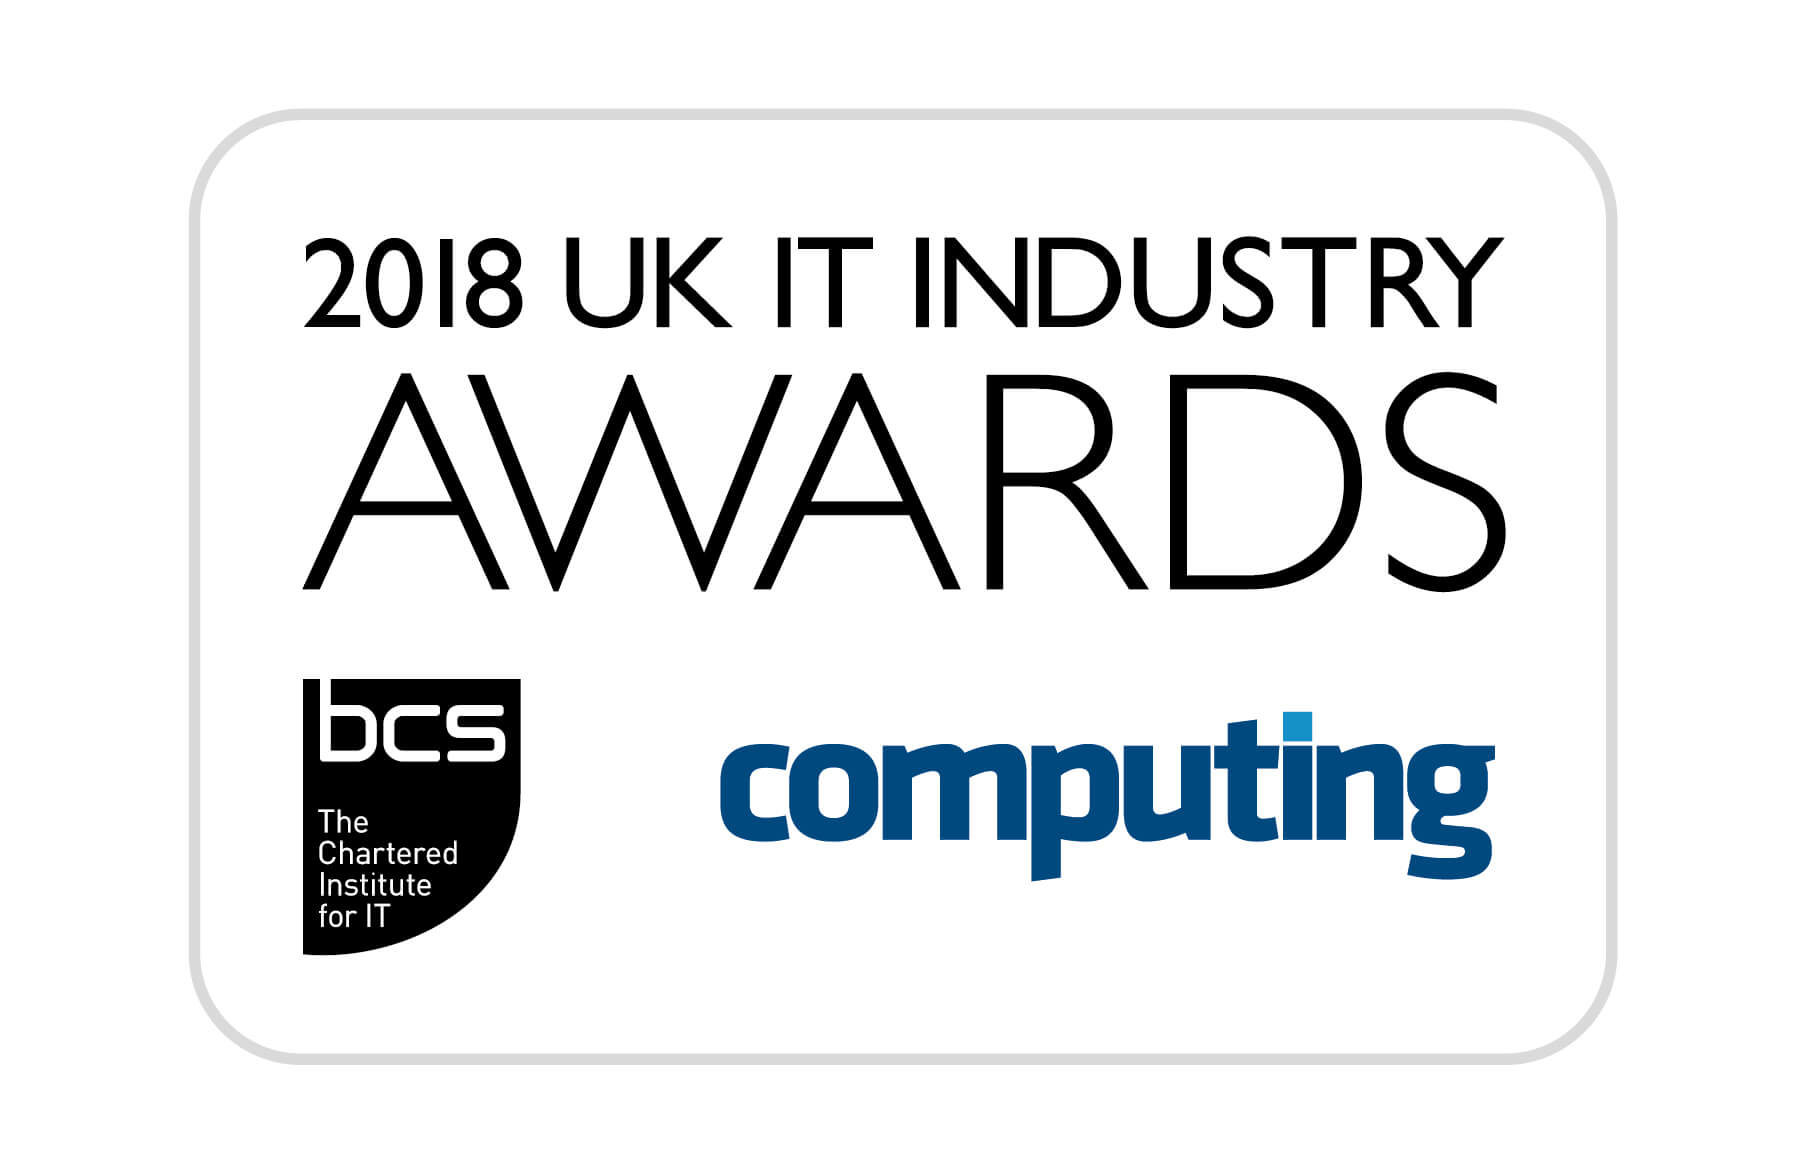 BCS UK IT Industry Awards Finalist 2018